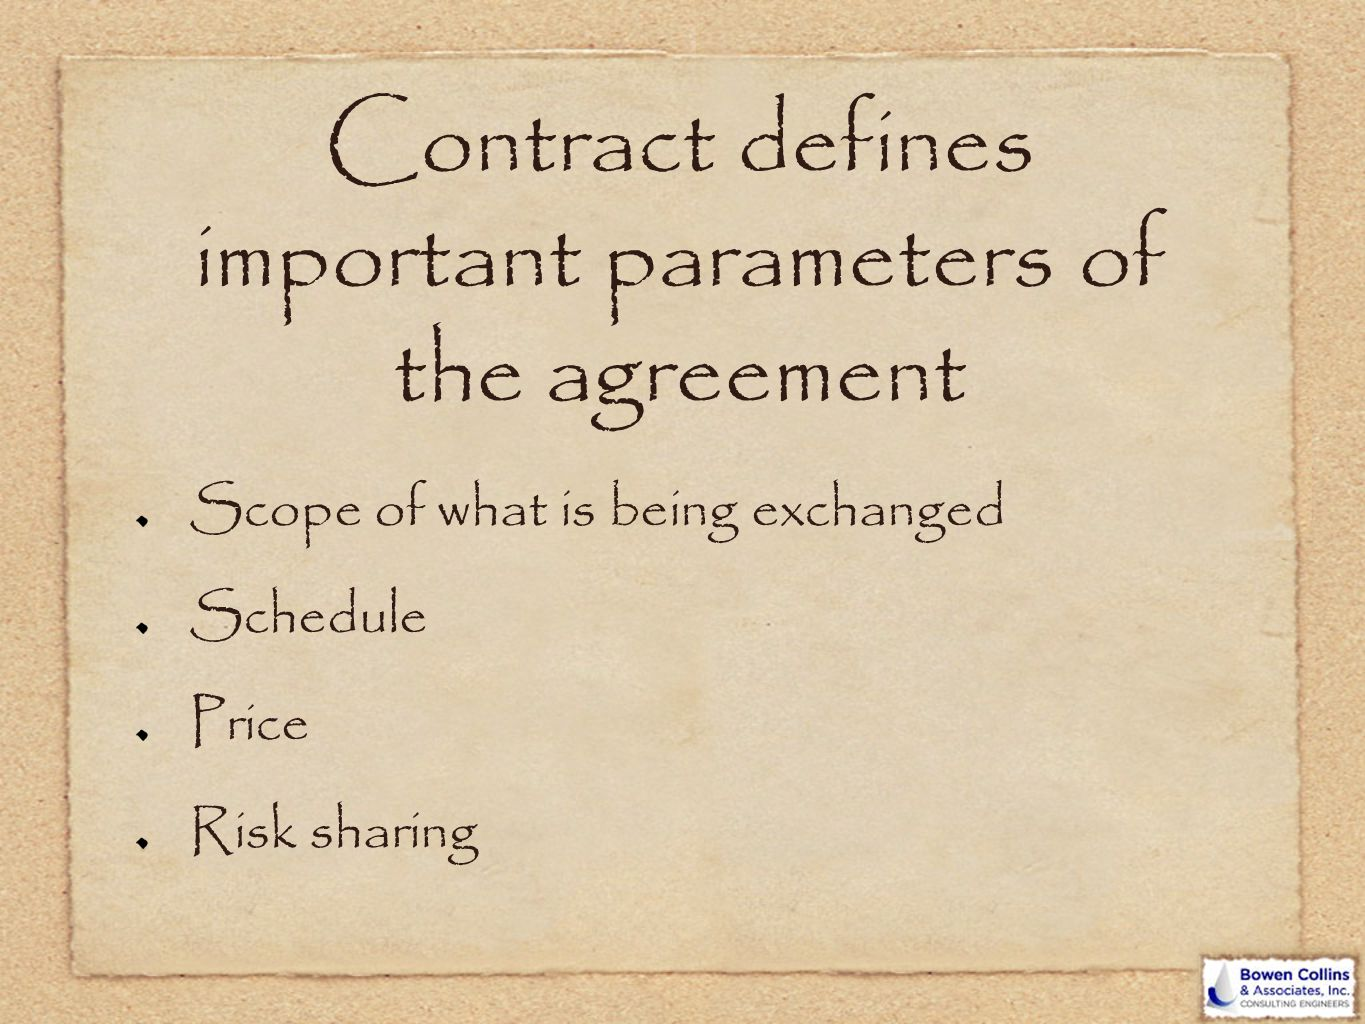 Contract defines important parameters of the agreement Scope of what is being exchanged Schedule Price Risk sharing